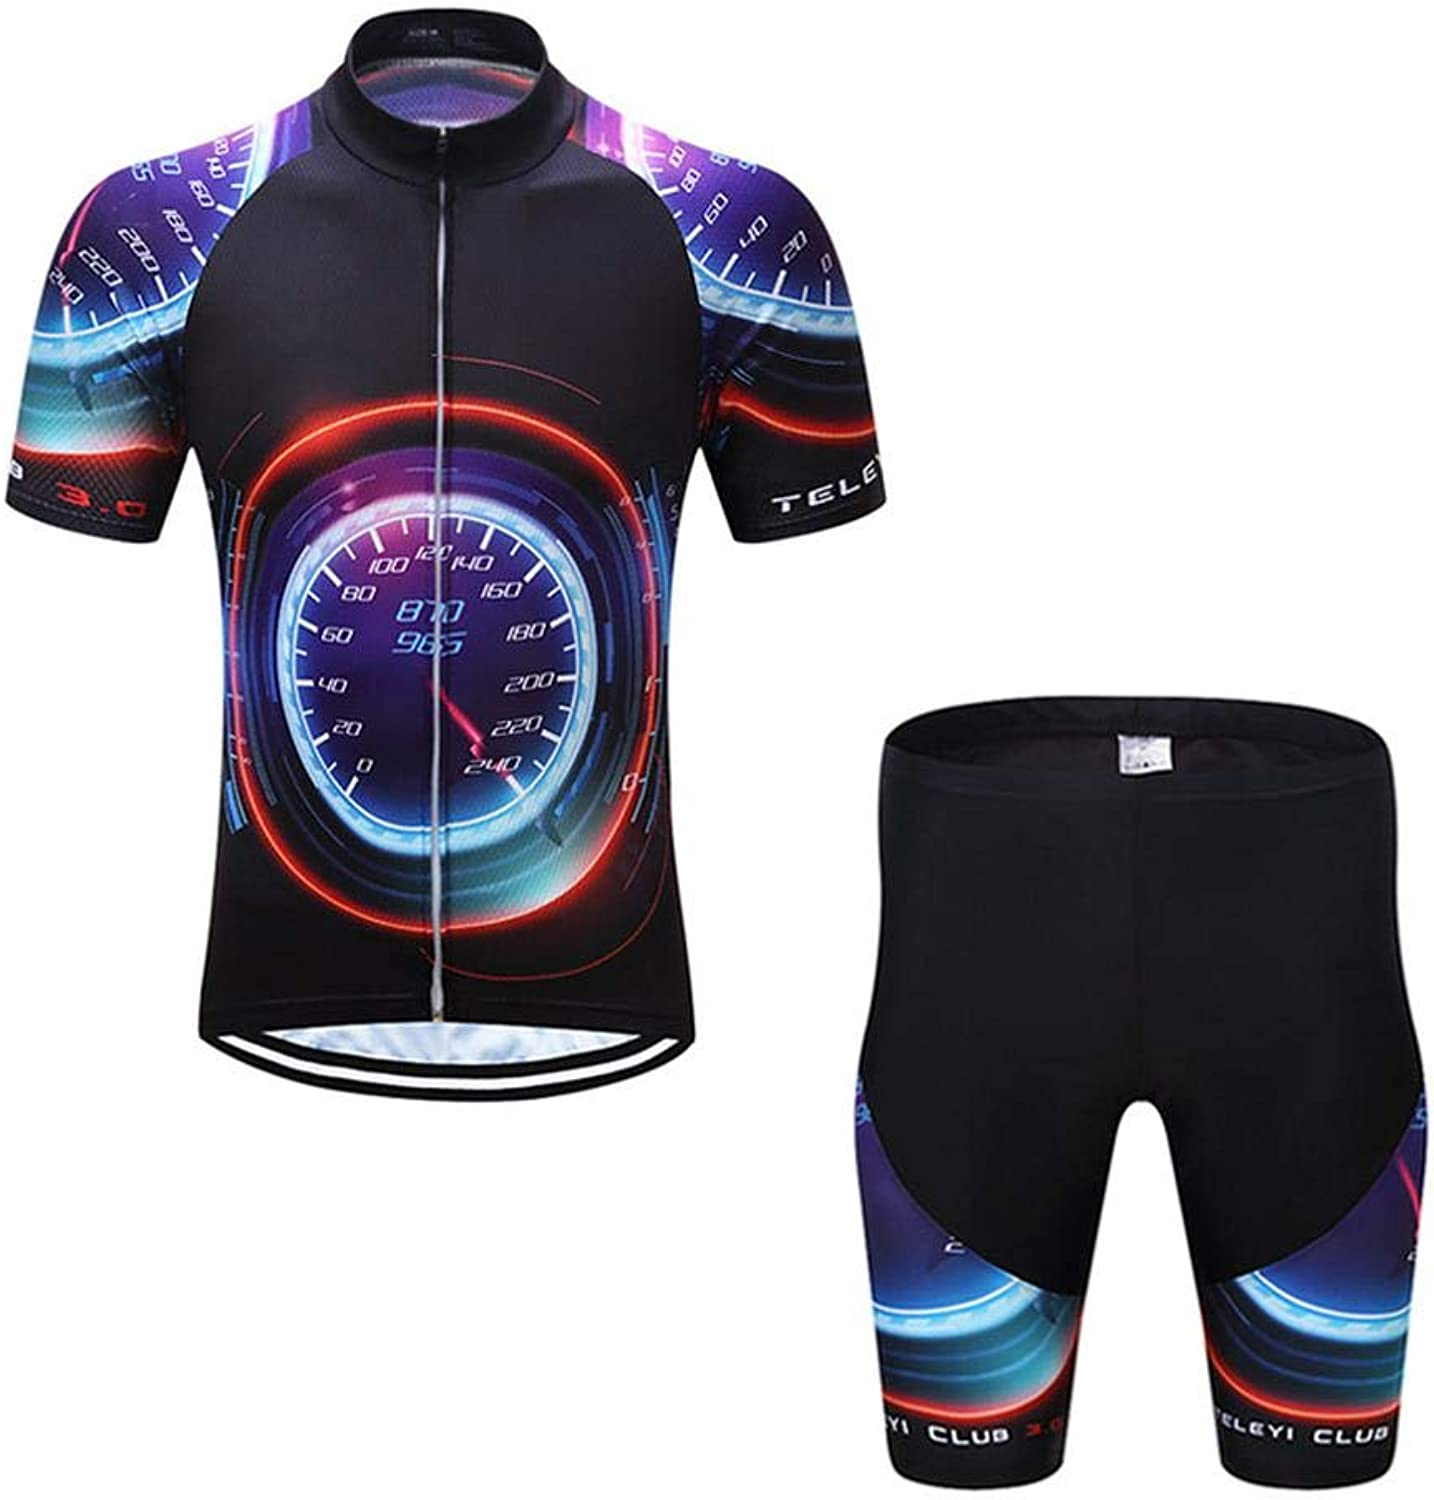 Men's Bib Shorts & Short Sleeve Jersey Set,Suitable For All Levels Of Cyclist From Beginner To Pro